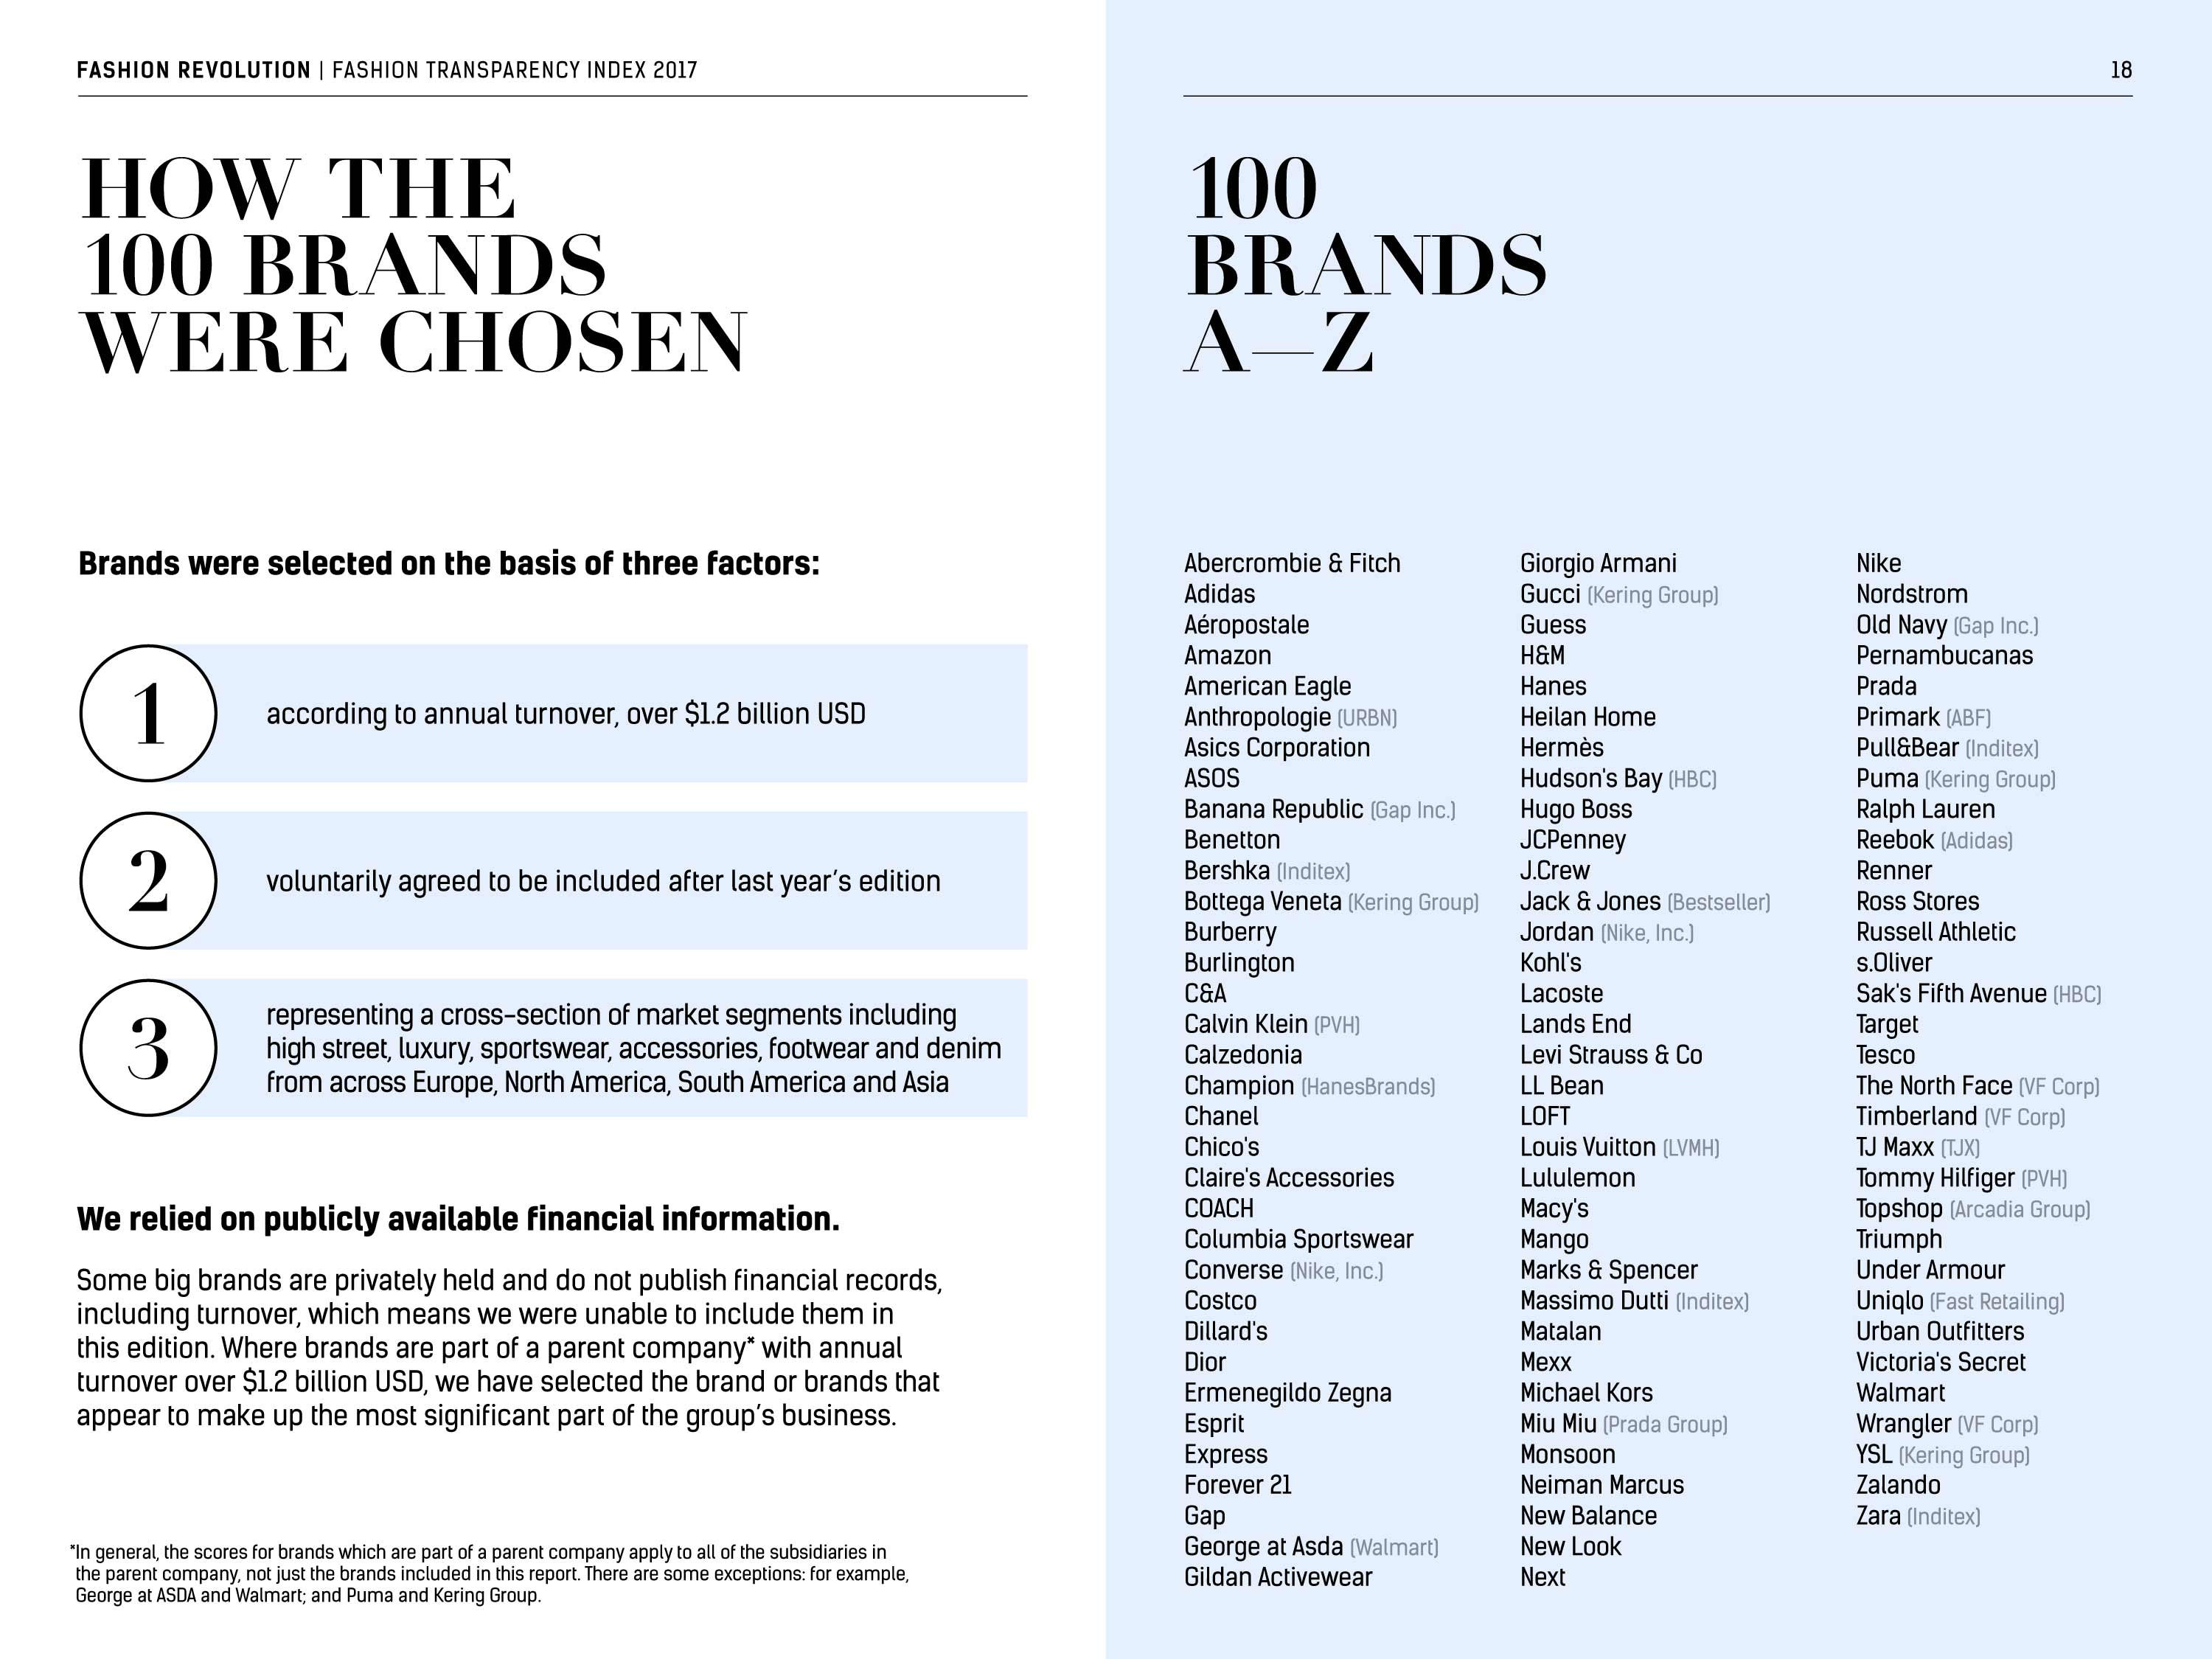 Fashion Transparency Index 2017 - 100 Brands A-Z